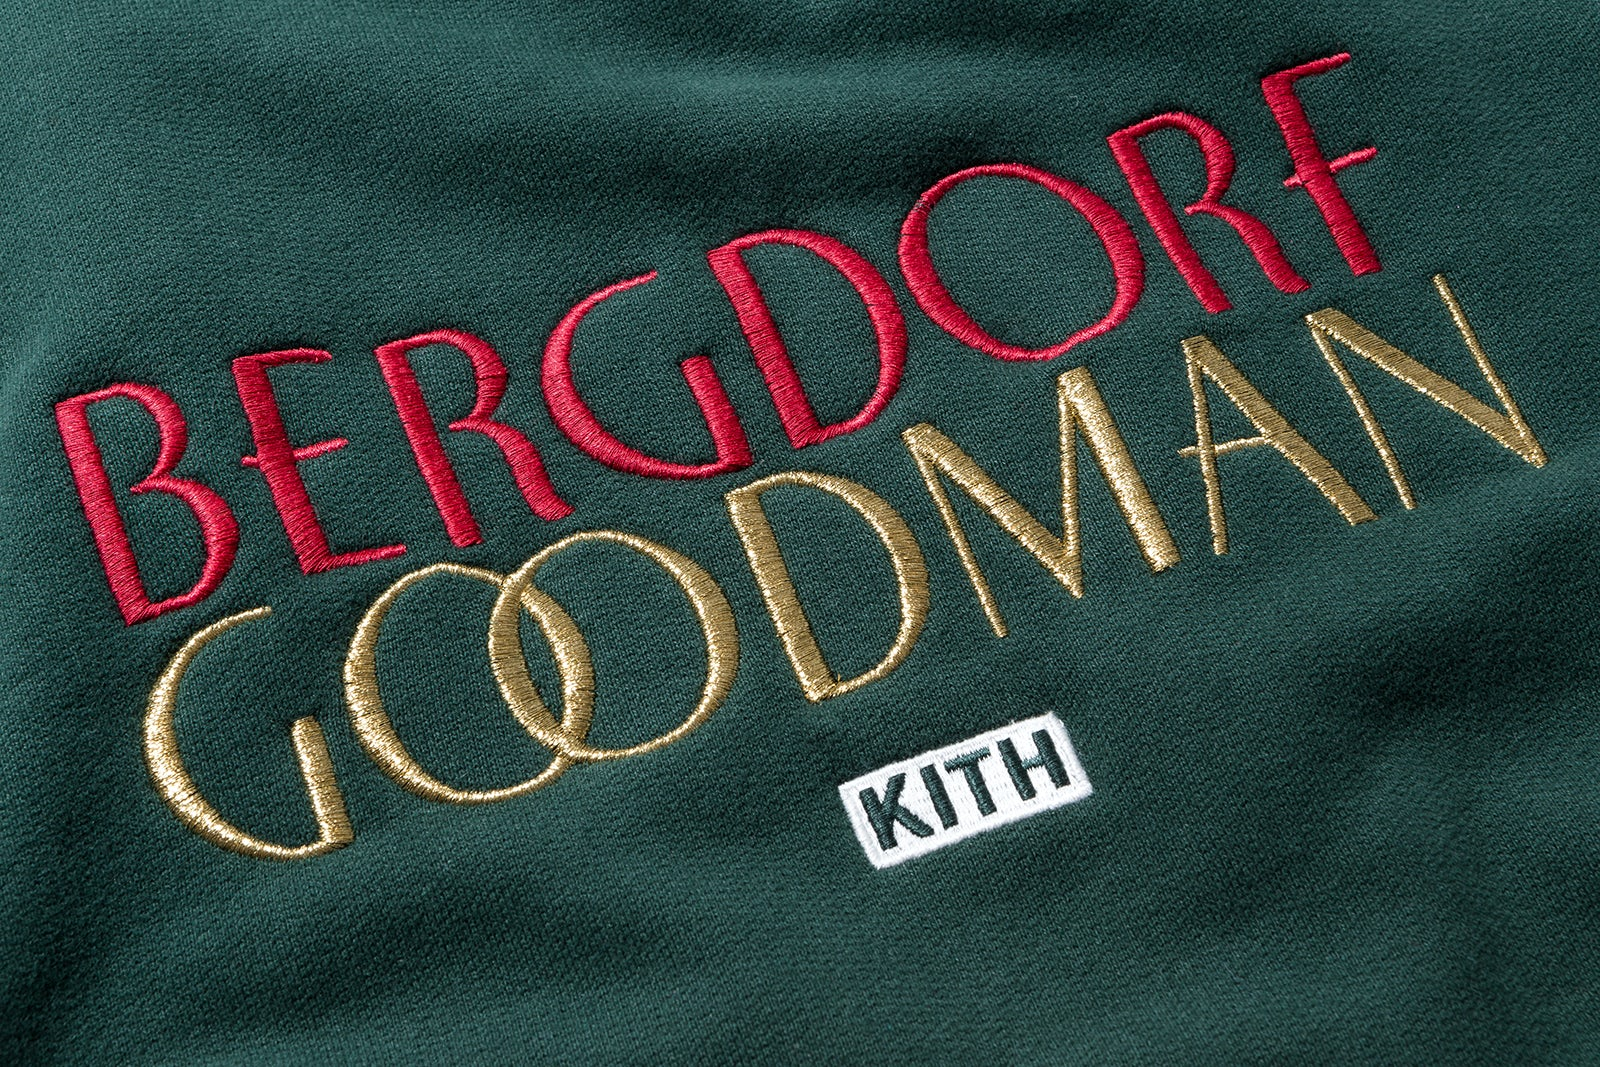 Bergdorf Goodman x Kith sweatshirt | Source: Kith